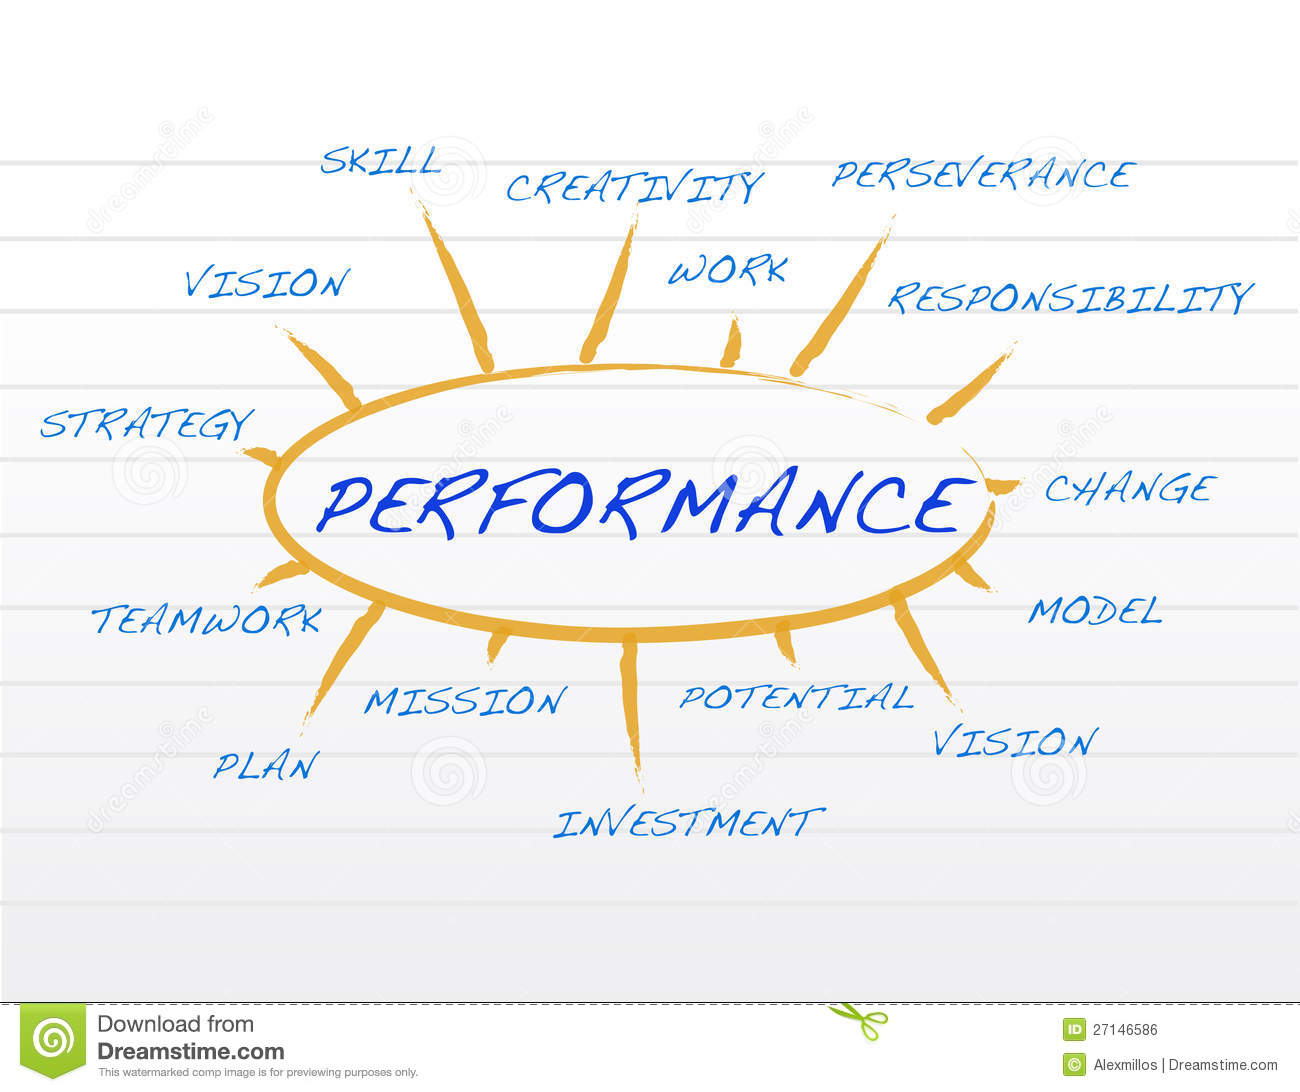 Performing arts business plan